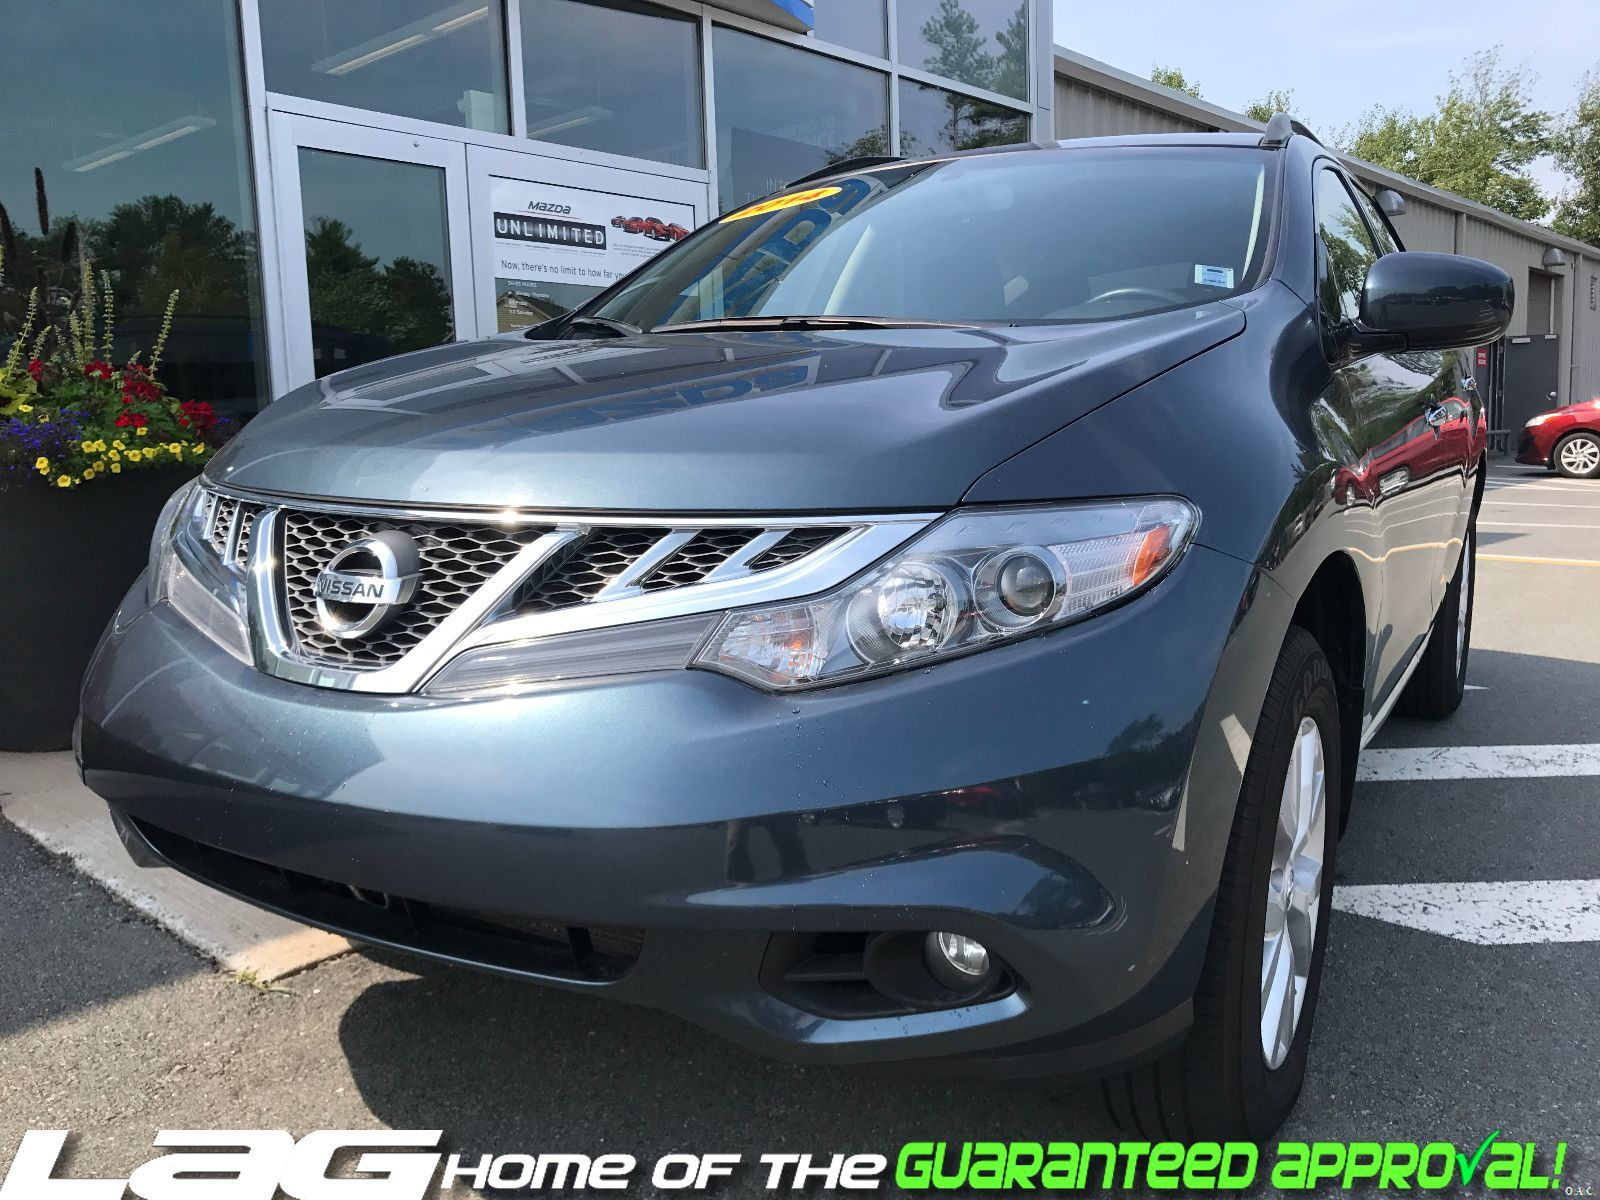 the for at york south florida show murano blogs out nissan blog attachment new watch dealership bill seidle o auto